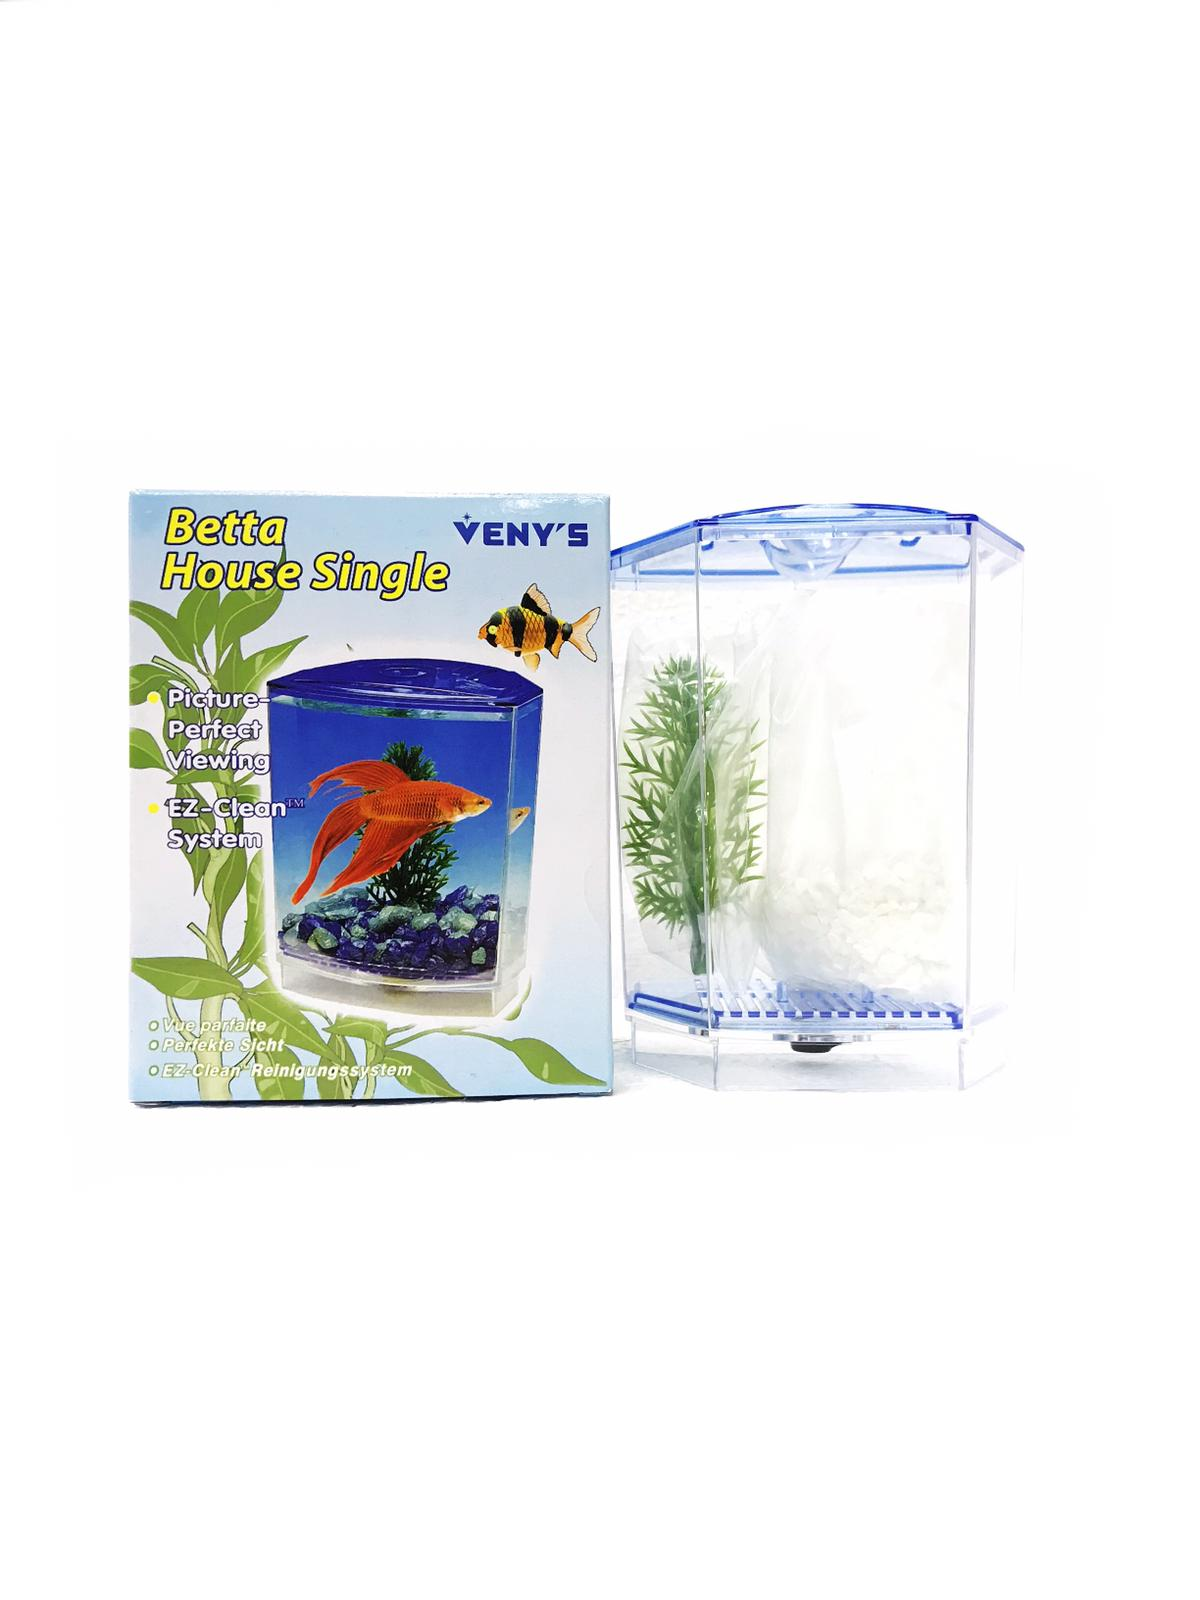 Veny's Betta House Single